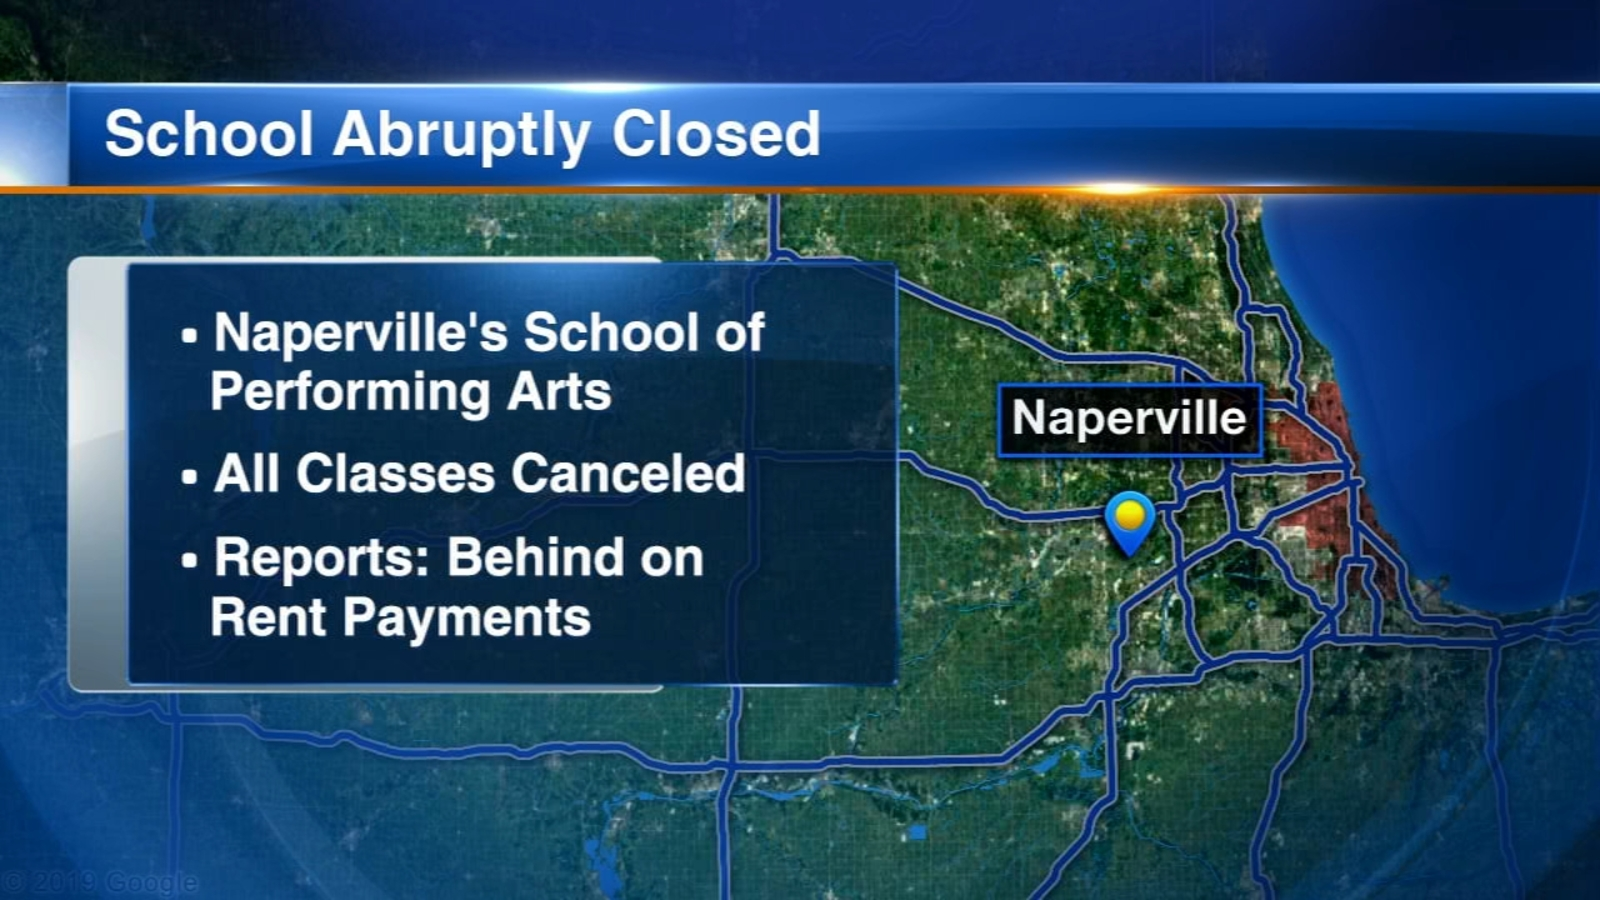 Naperville's School of Performing Arts suddenly closes, owner files for bankruptcy protection